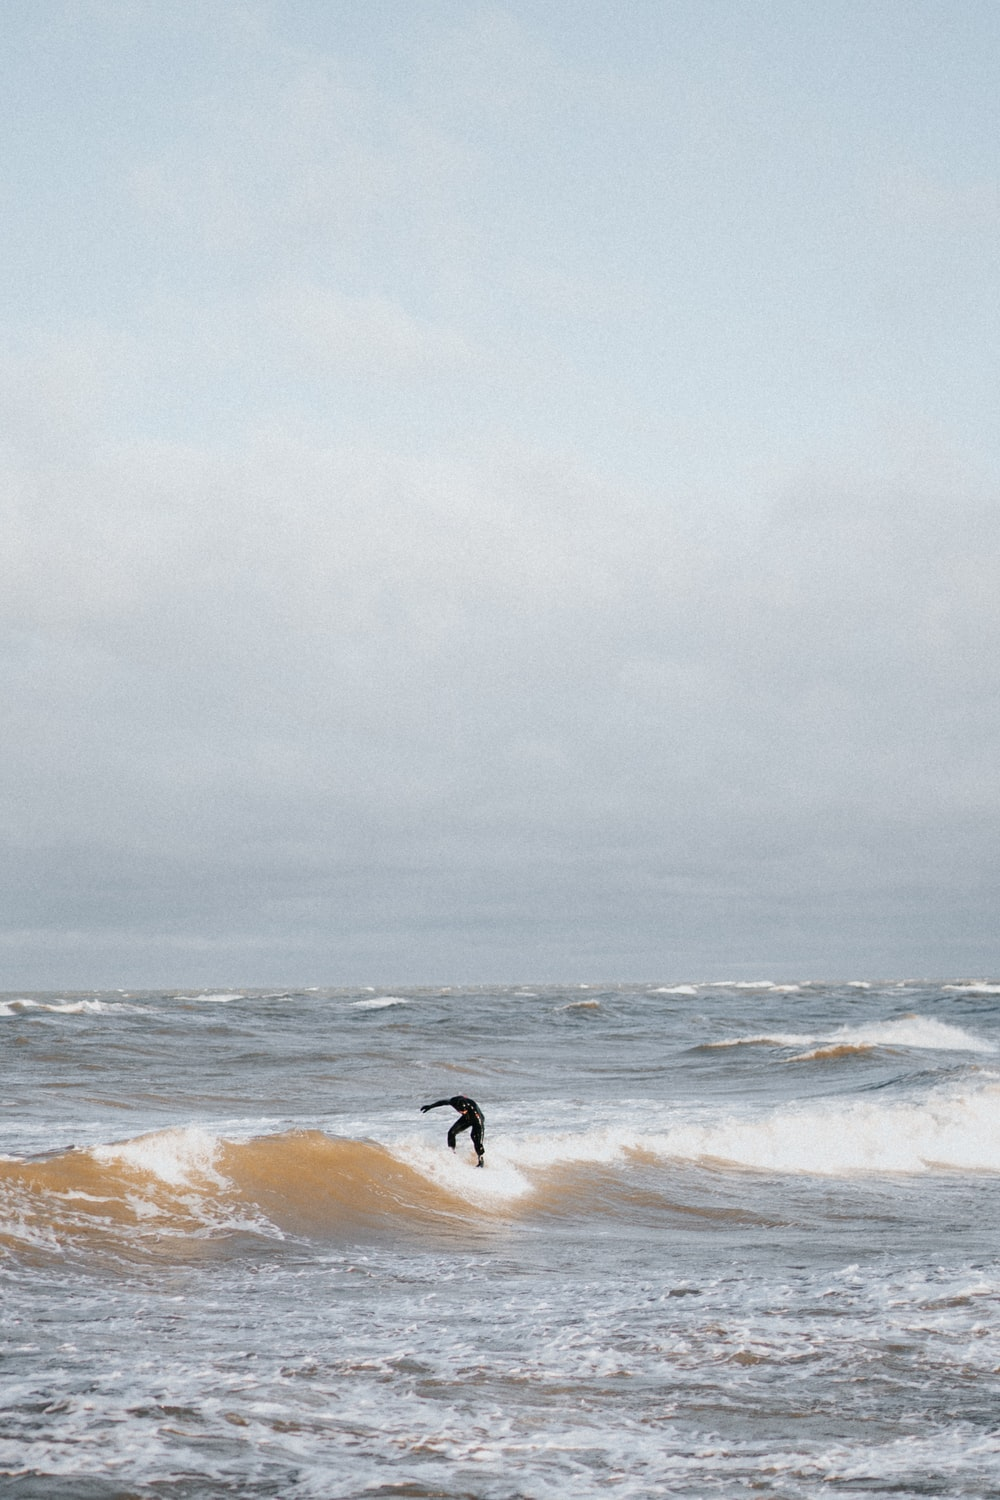 person surfing on sea wave under white sky